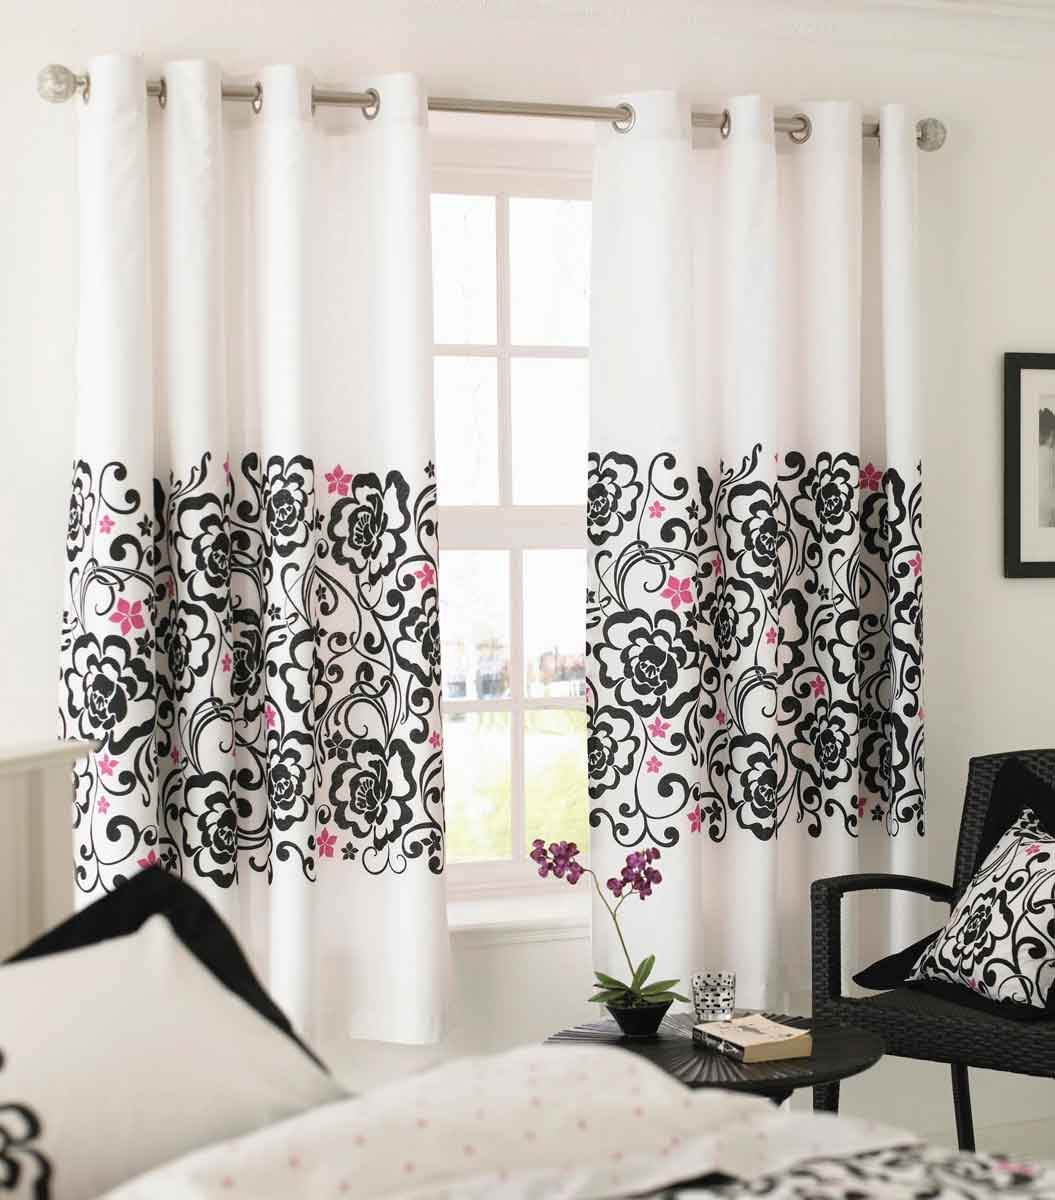 Bedroom Curtains: Full Guide on How to Decorate the Windows. White drapes in Japanese style